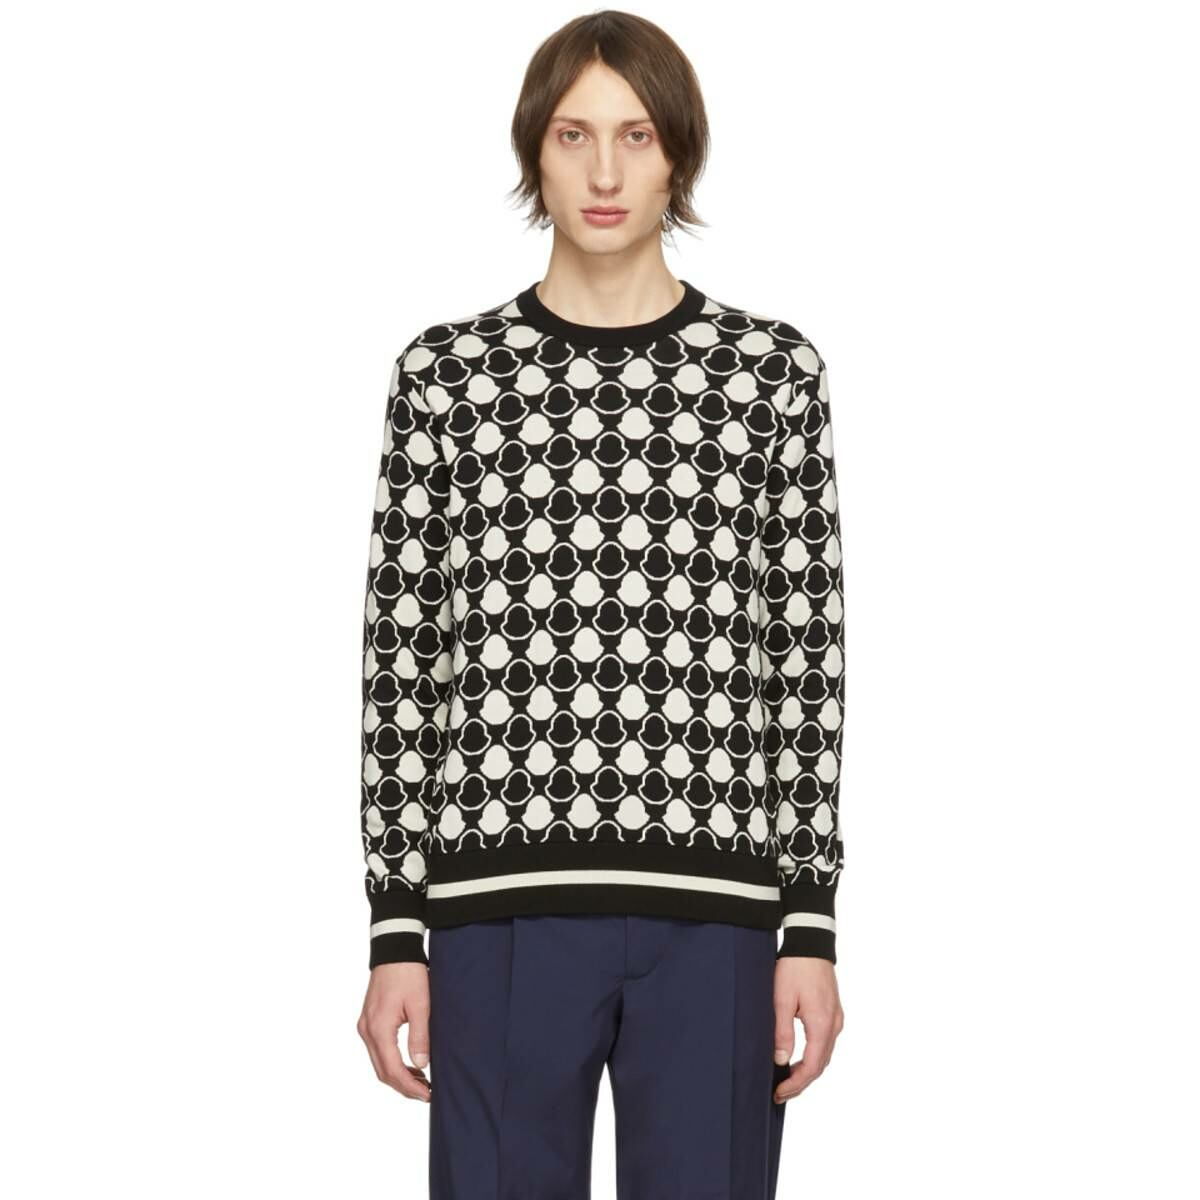 Moncler Black and White Jacquard Bell Sweater Ssense USA MEN Men FASHION Mens KNITWEAR